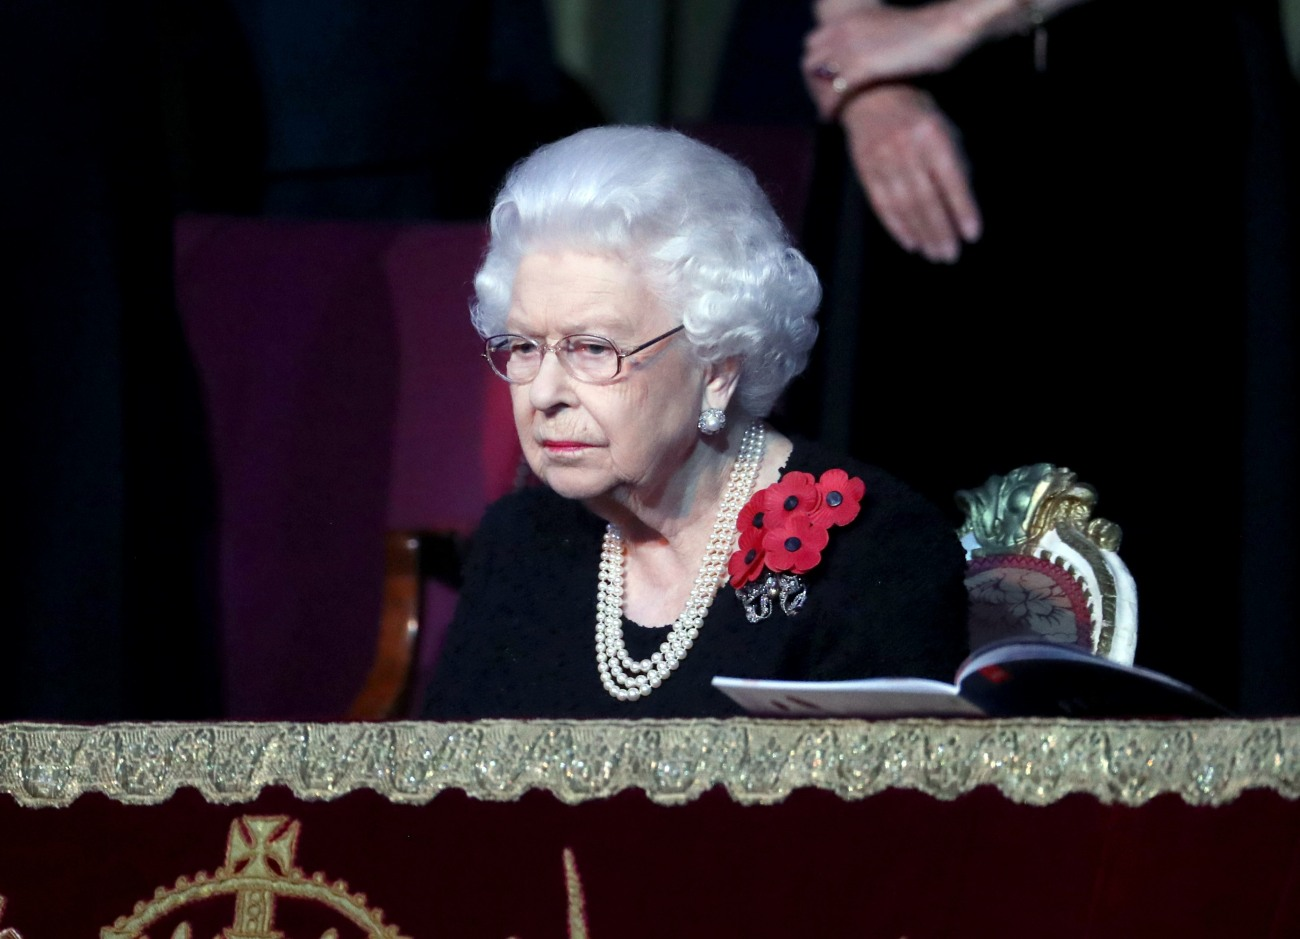 Queen Elizabeth II attends the annual Royal British Legion Festival of Remembrance at the Royal Albert Hall on November 09, 2019 in London, England.